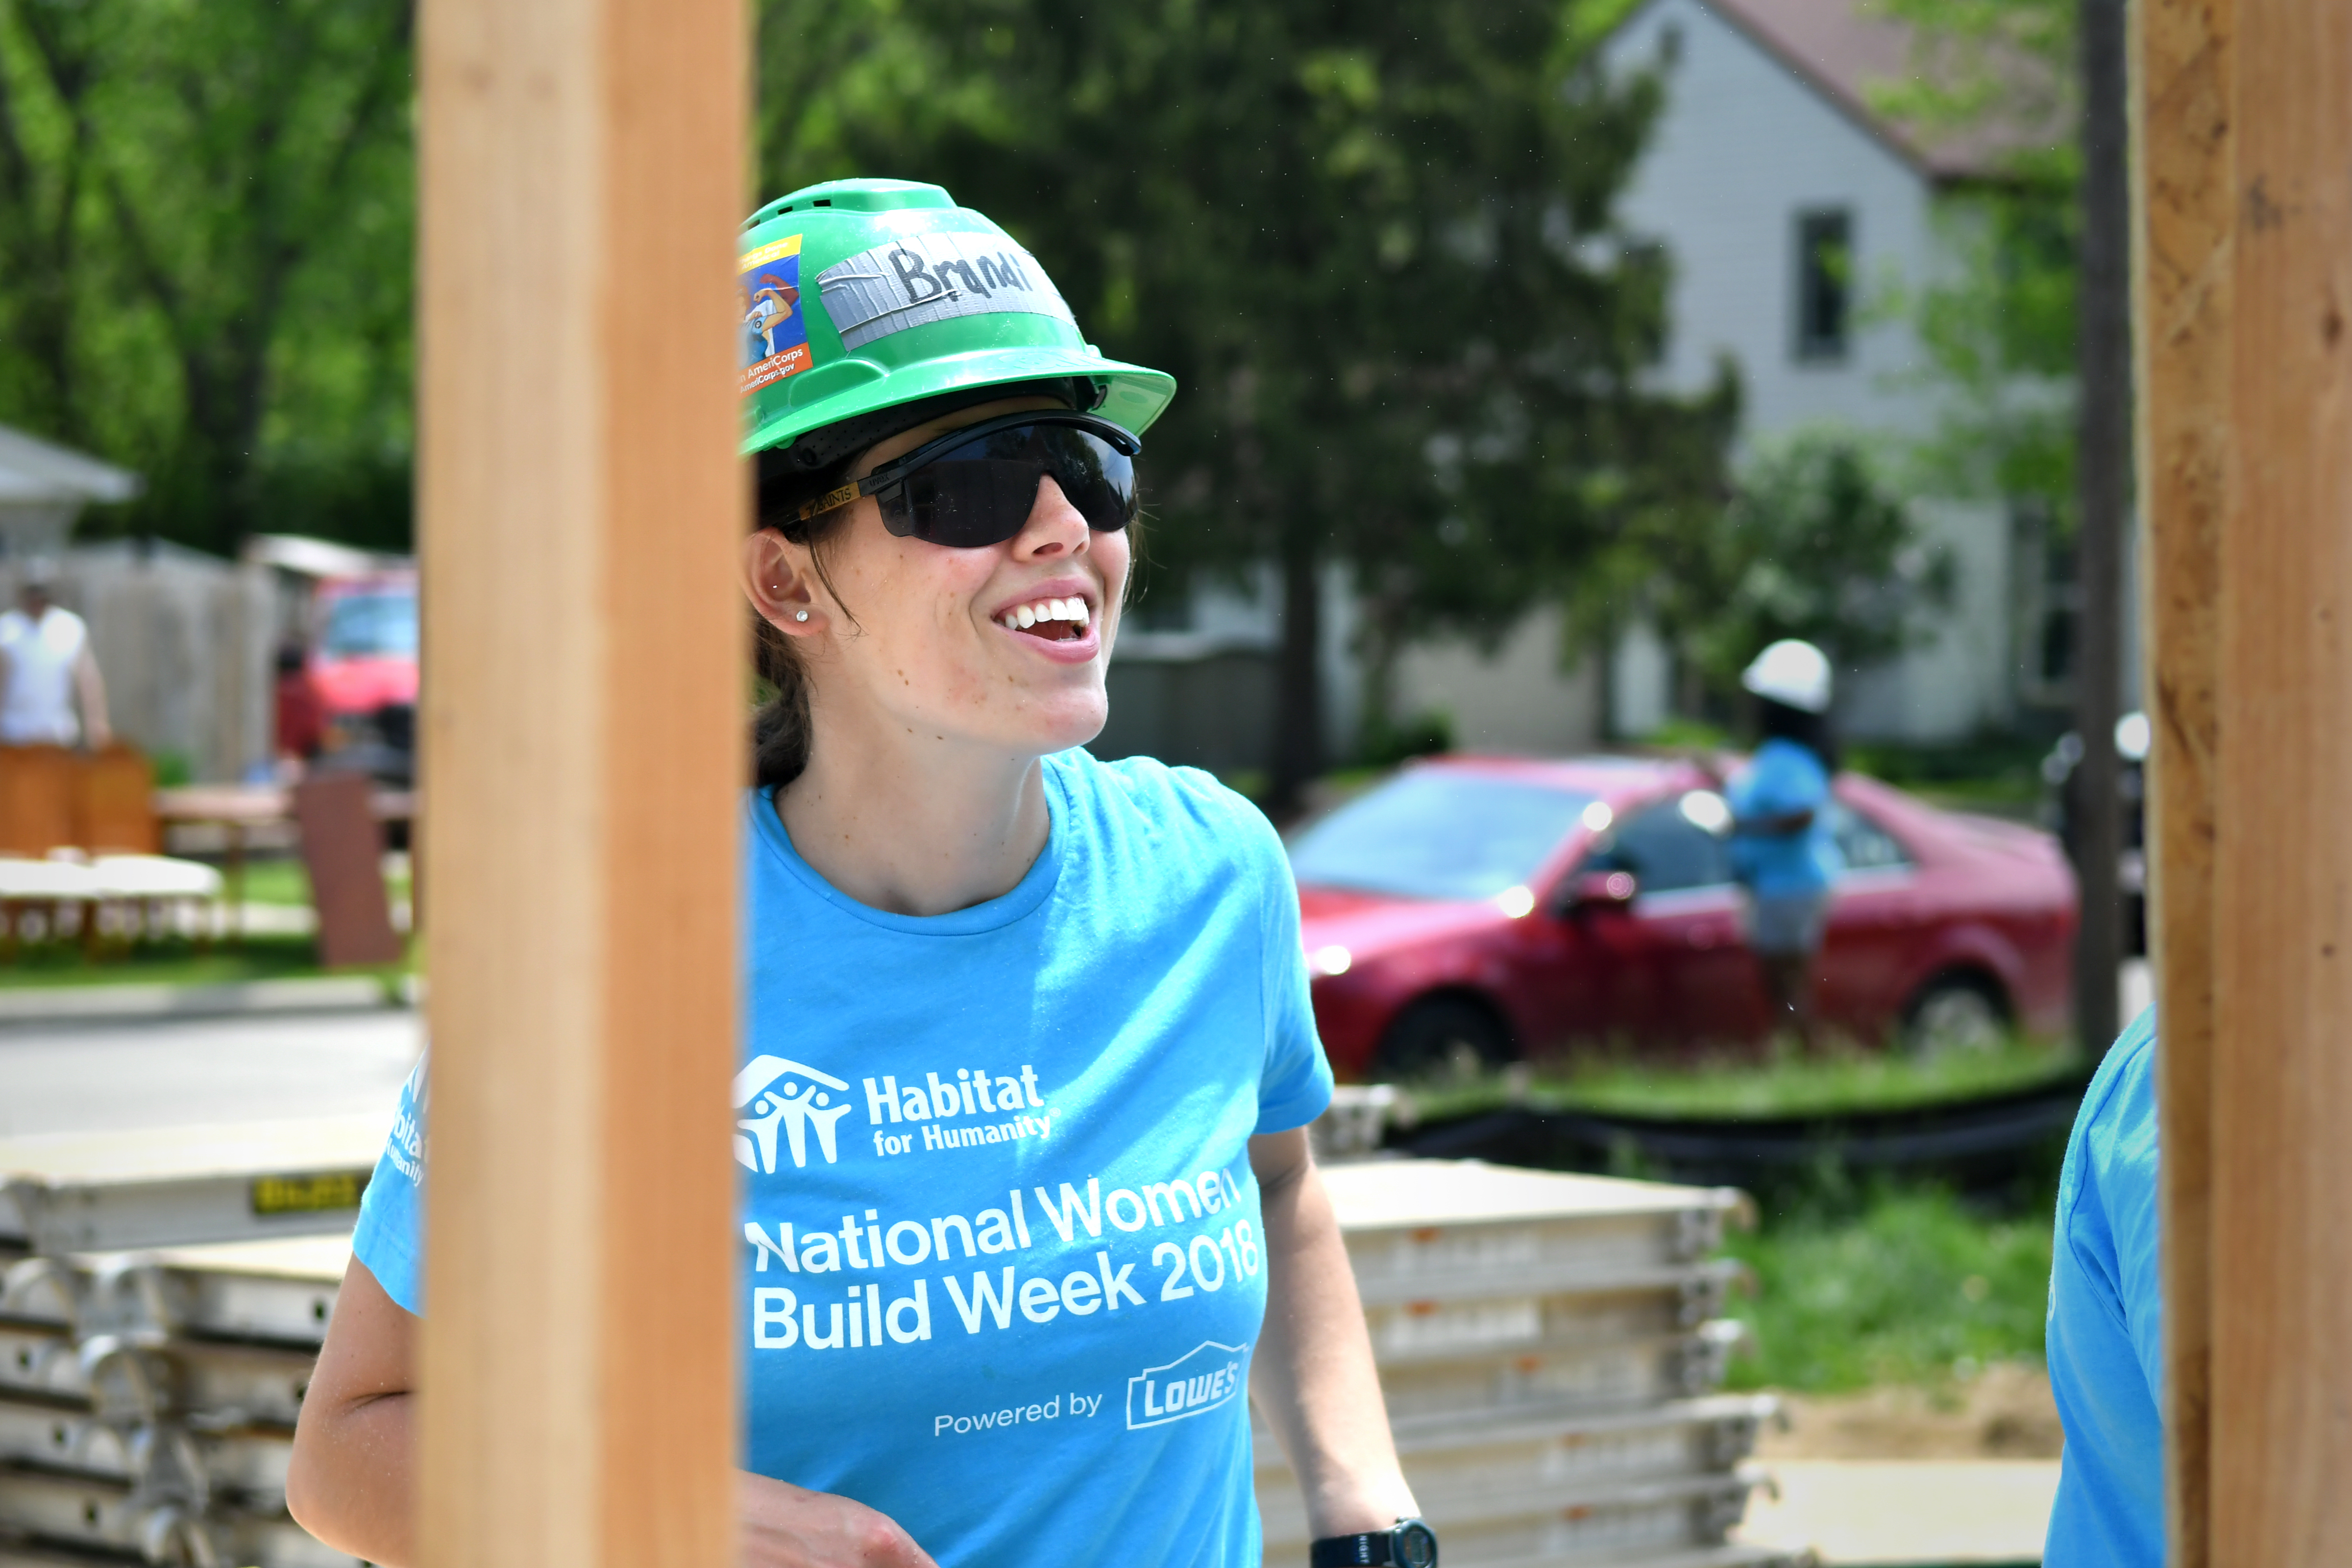 HFHGC partners with Lowe's for National Women Build Week